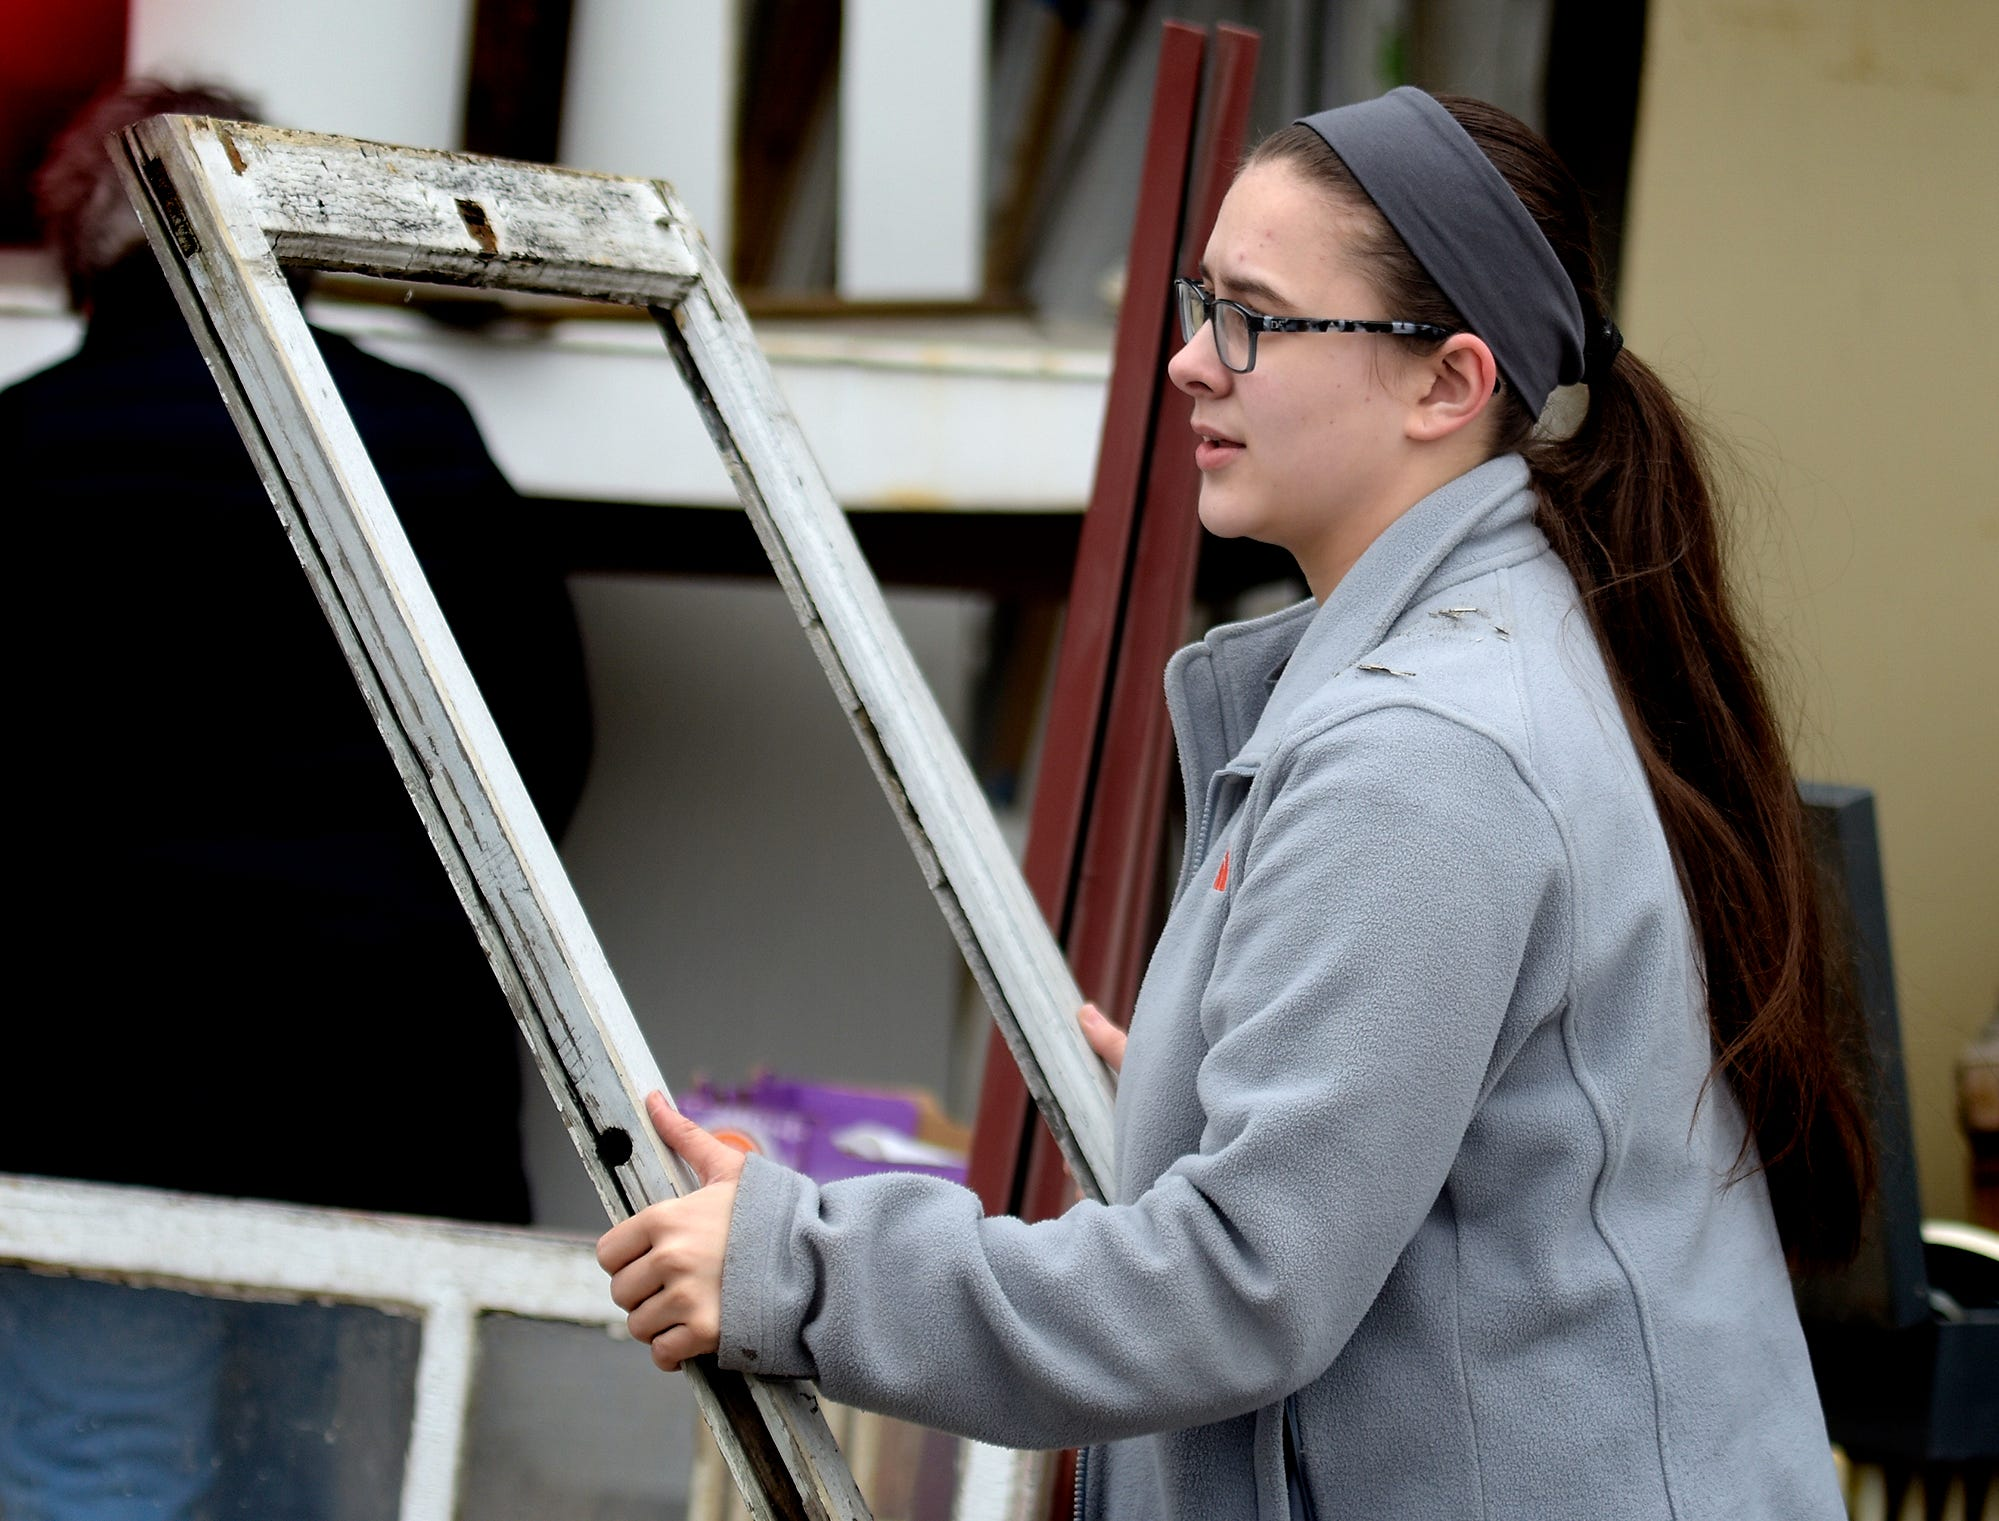 Central High School sophomore Emma Crumling considers a window frame while choosing items for her entry in the York County Solid Waste Authority Recycled Art Contest during Picker Day at the architectural salvage warehouse Refindings in York City Saturday, Feb. 23, 2019. The waste authority is sponsoring the fifth annual contest for York County high school students to promote recycling and celebrate Earth Day. Students create sculptures by mid-April from the materials donated by Refindings and the contest exhibit will be on display in the Marketview Arts Gallery, 37 W. Philadelphia St., beginning Sunday, April 14. Contest winners will be announced there during an awards event April 18. Bill Kalina photo